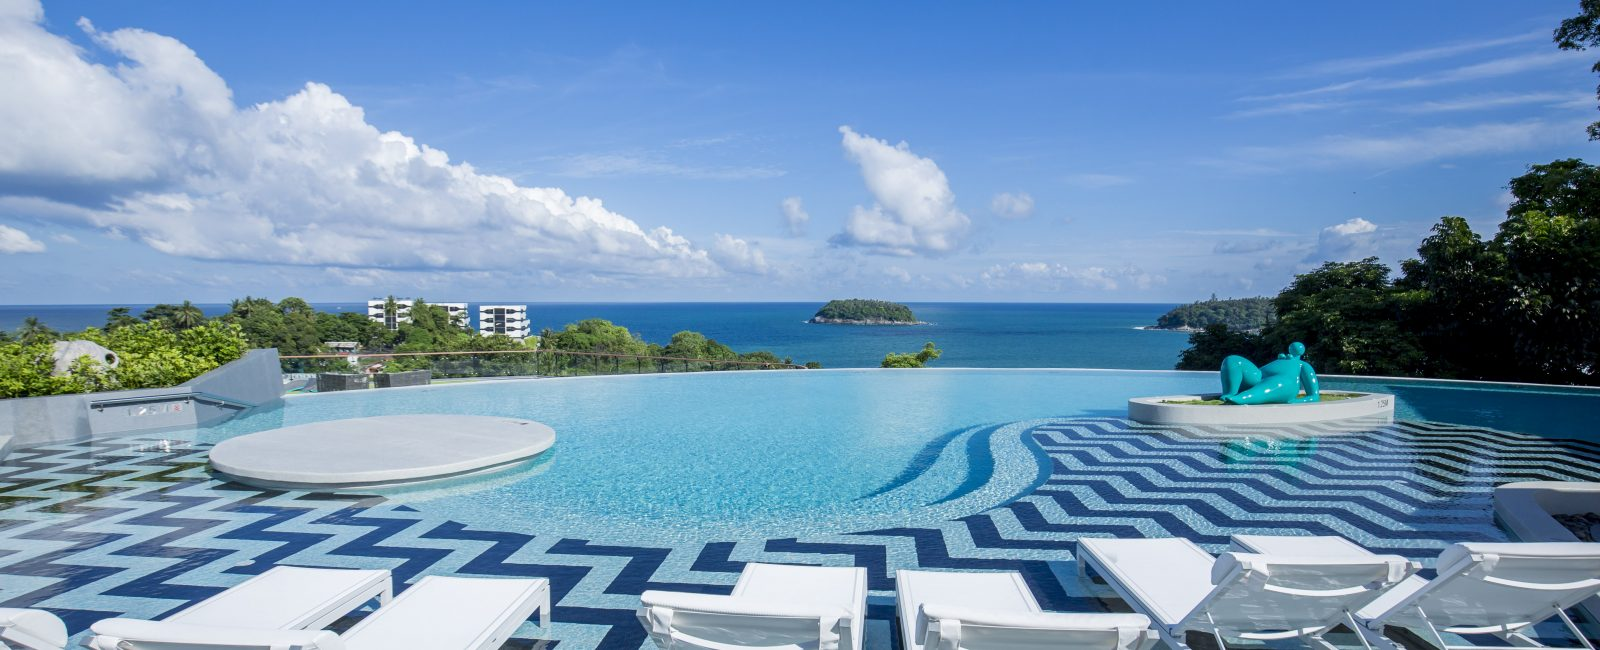 A Stylish Weekend in a traditional sea-side town of Phuket!